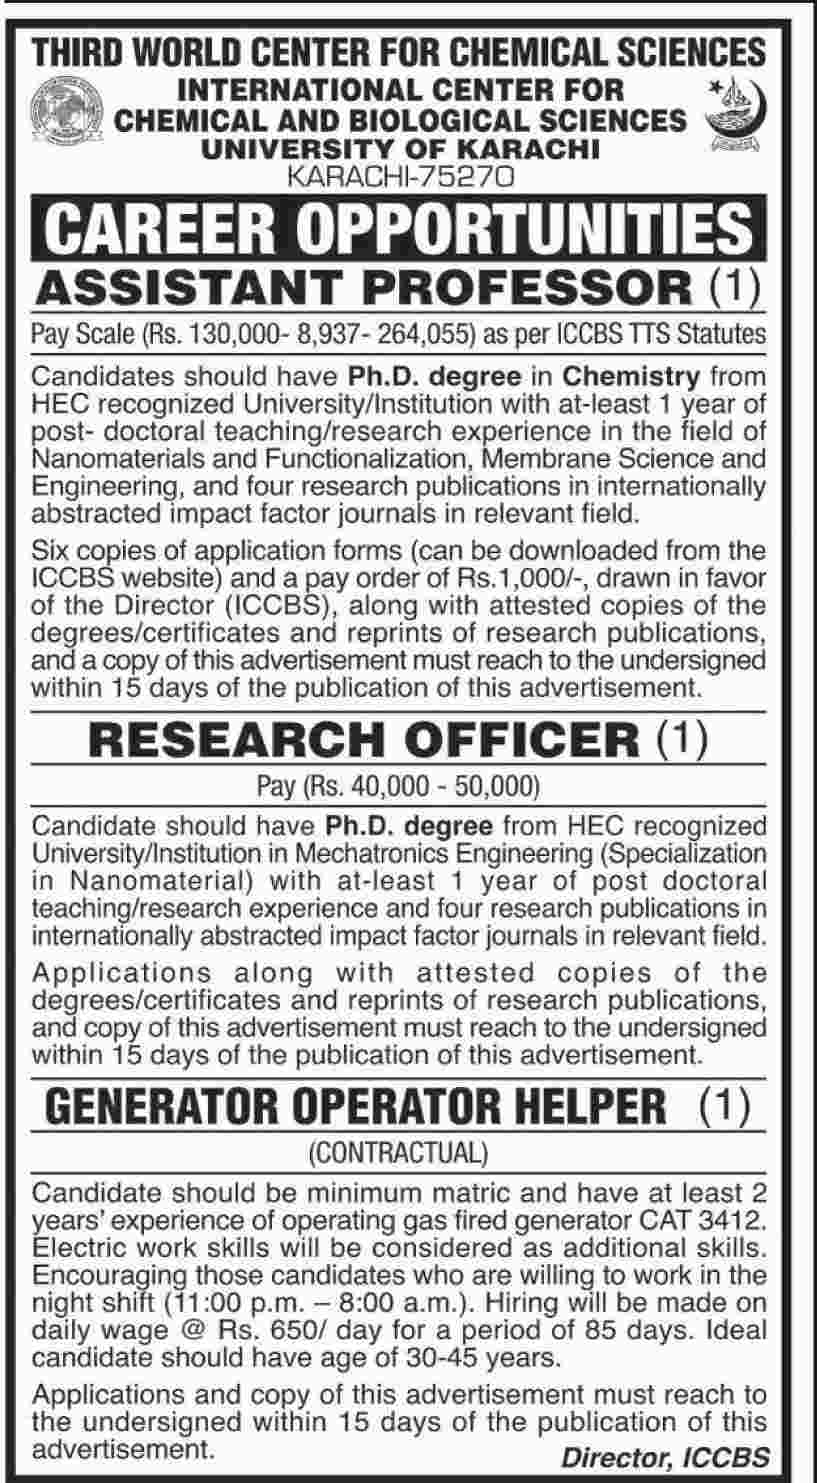 Jobs In Third World Center For Chemical Sciences 16 Jan 2018